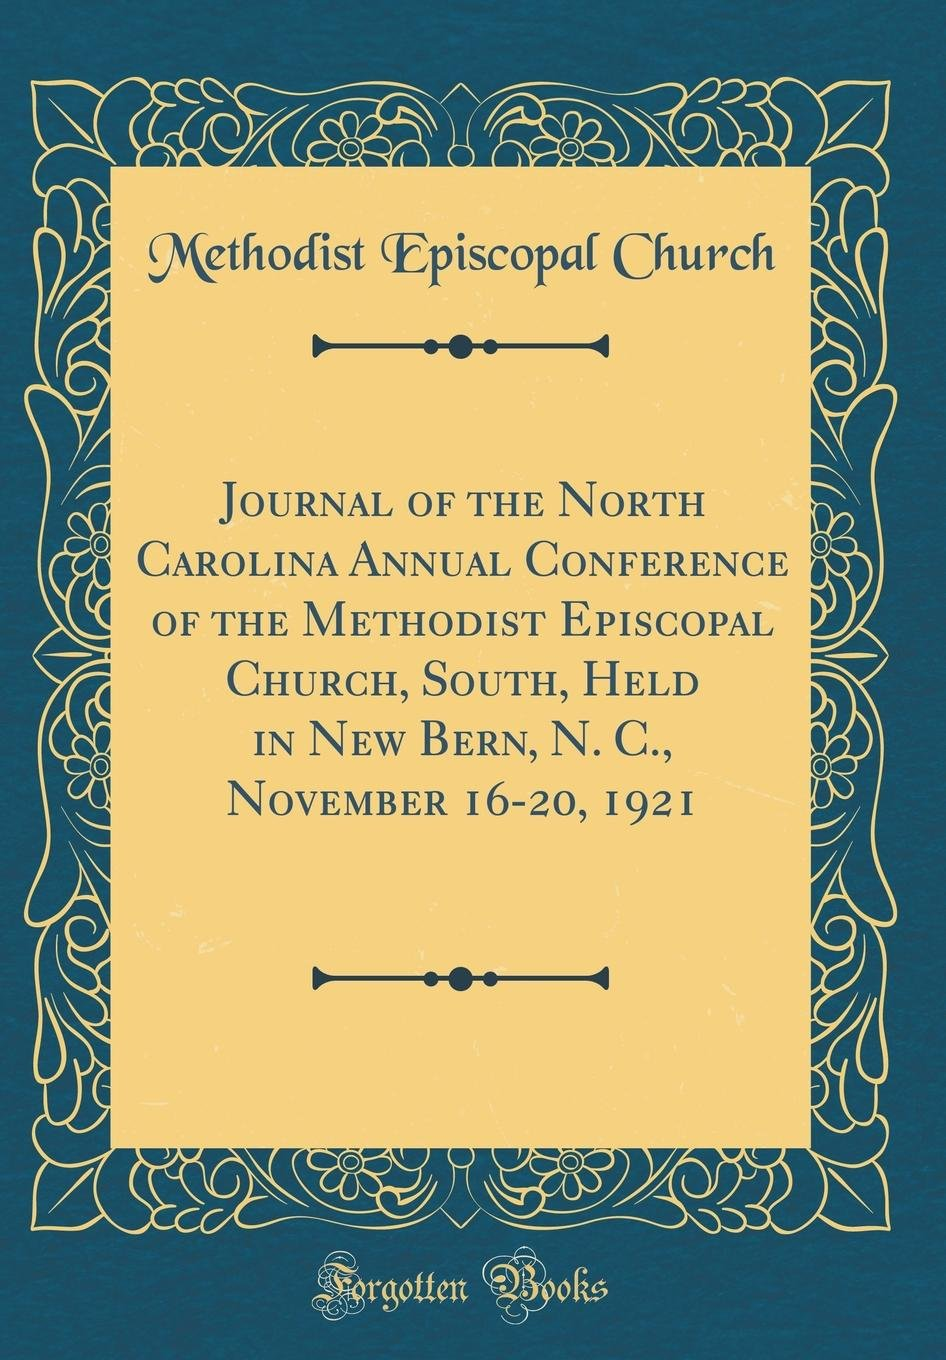 Journal of the North Carolina Annual Conference of the Methodist Episcopal Church, South, Held in New Bern, N. C., November 16-20, 1921 (Classic Reprint) PDF Text fb2 ebook